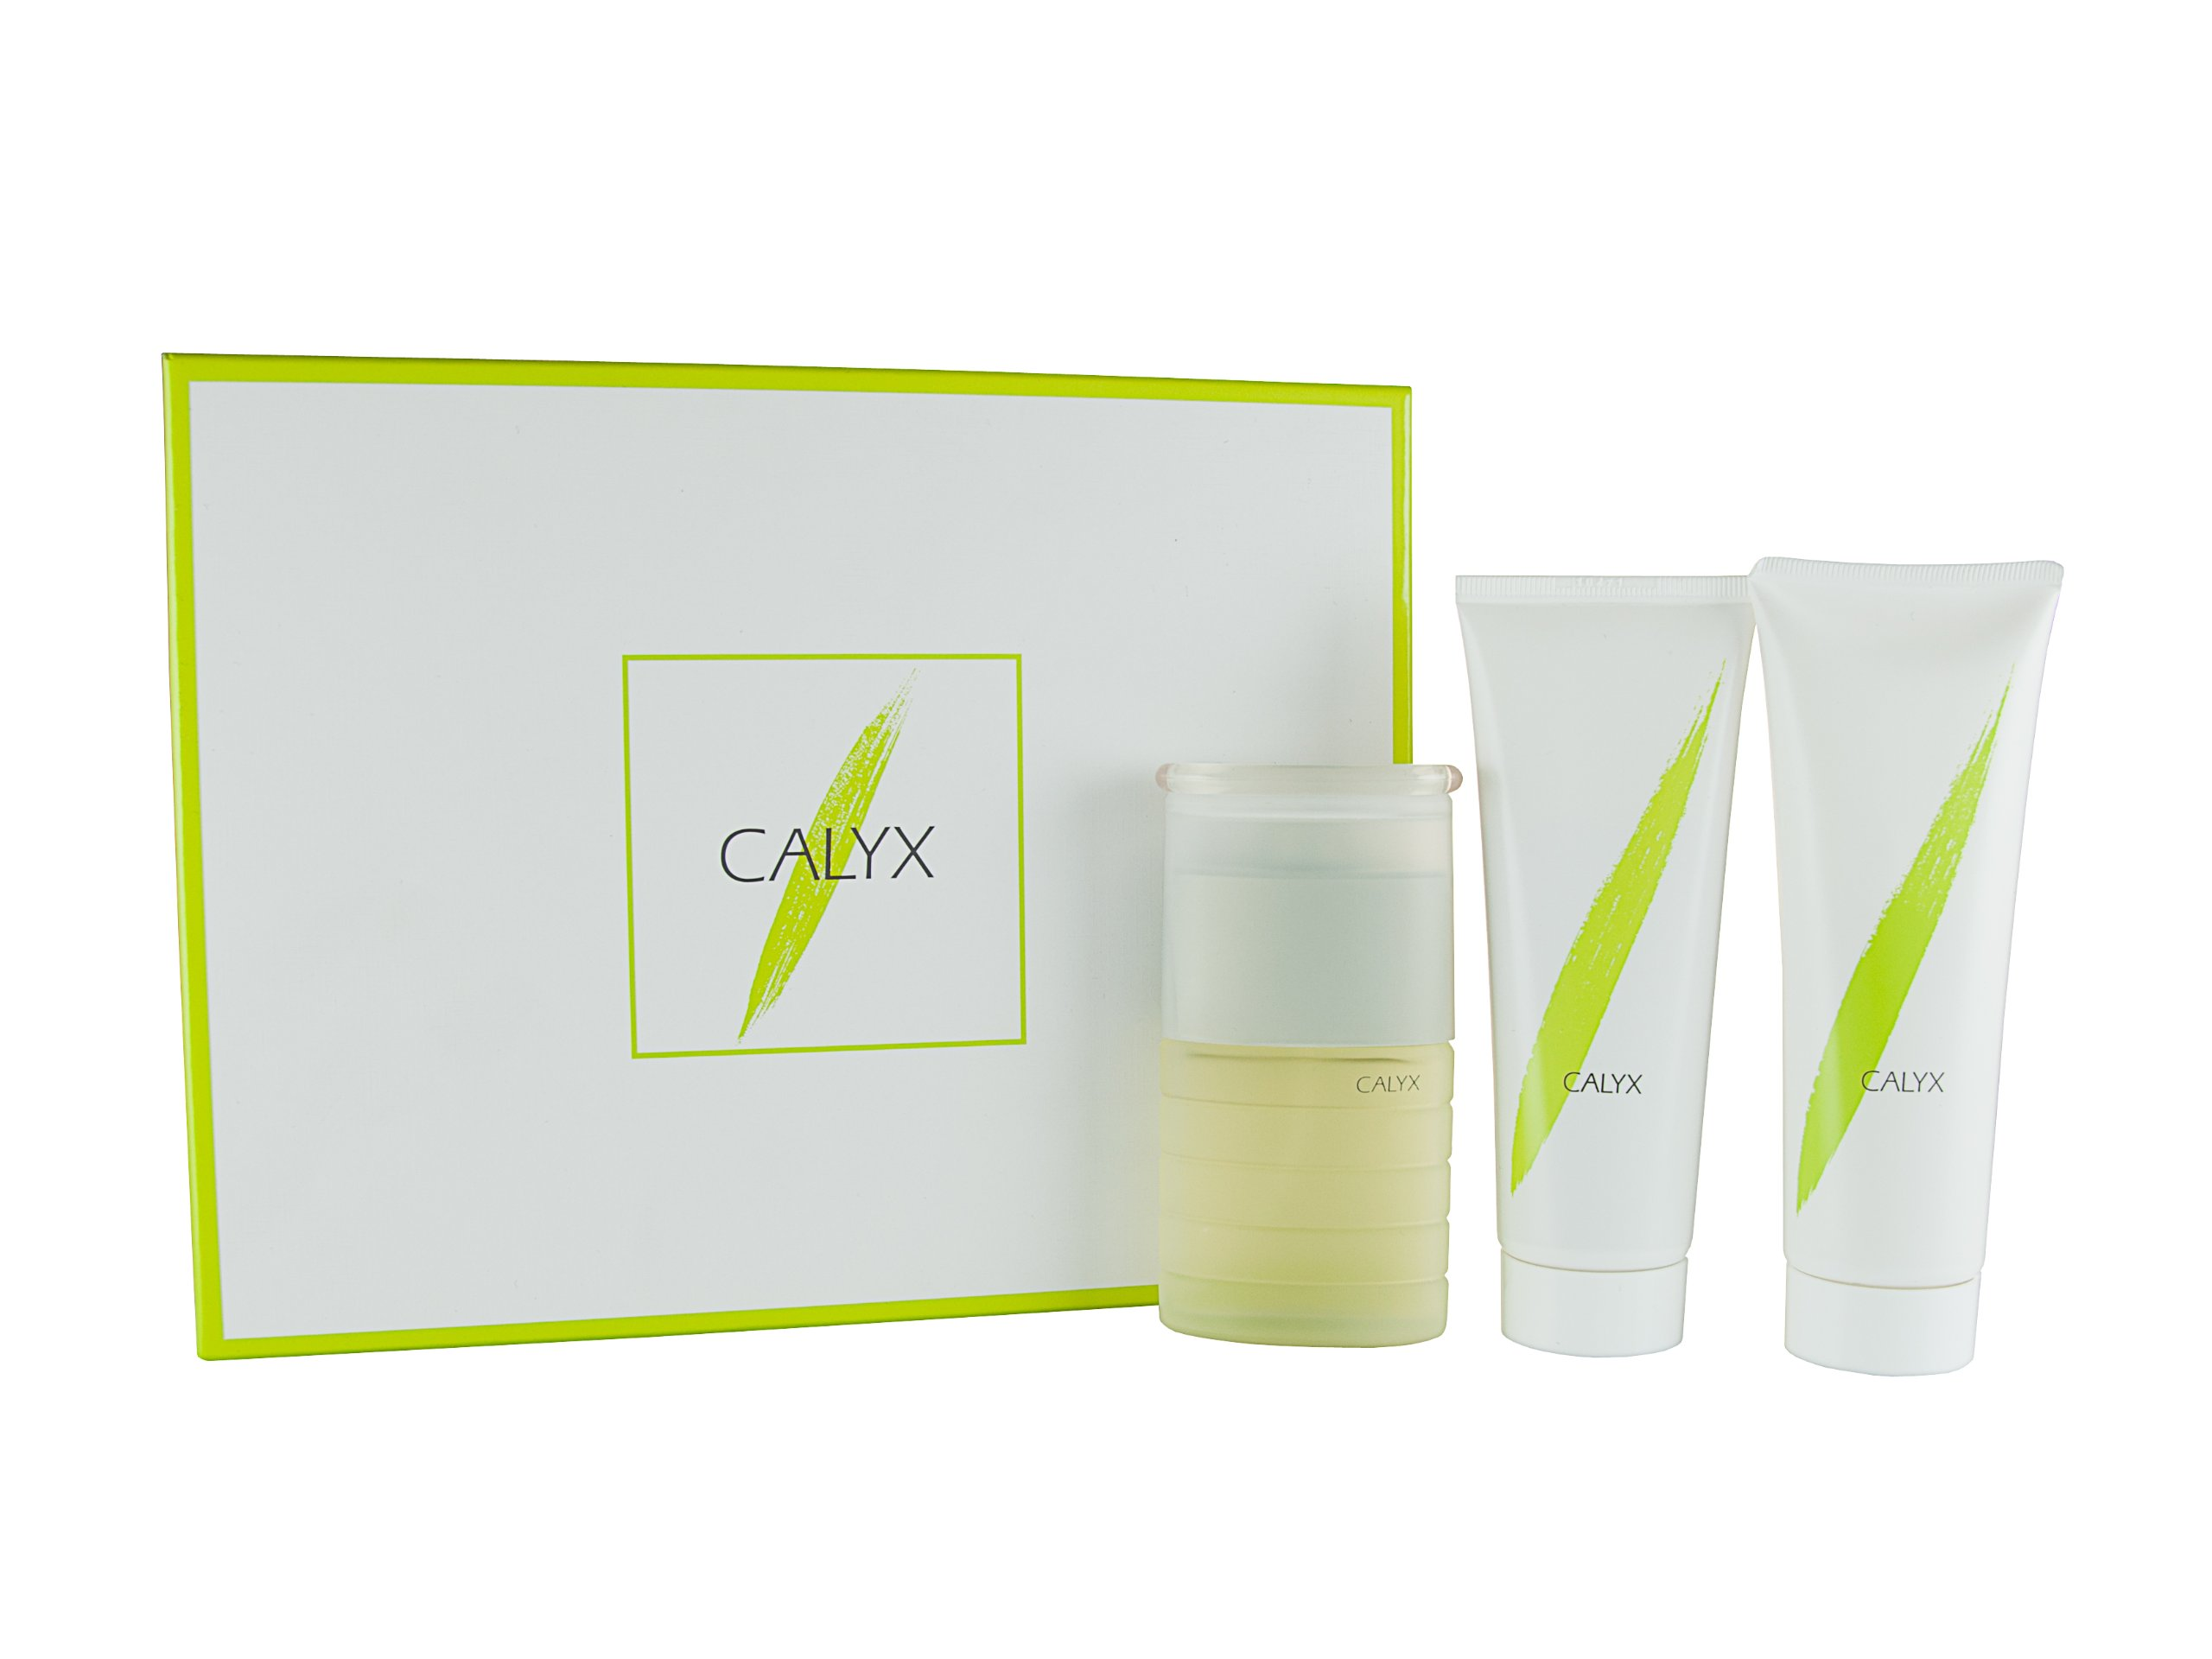 Calyx 3 Piece Set By Prescriptives for Women. 1.7 Oz Spray, 3.4 Oz Body Lotion, 3.4 Oz Shower Gel